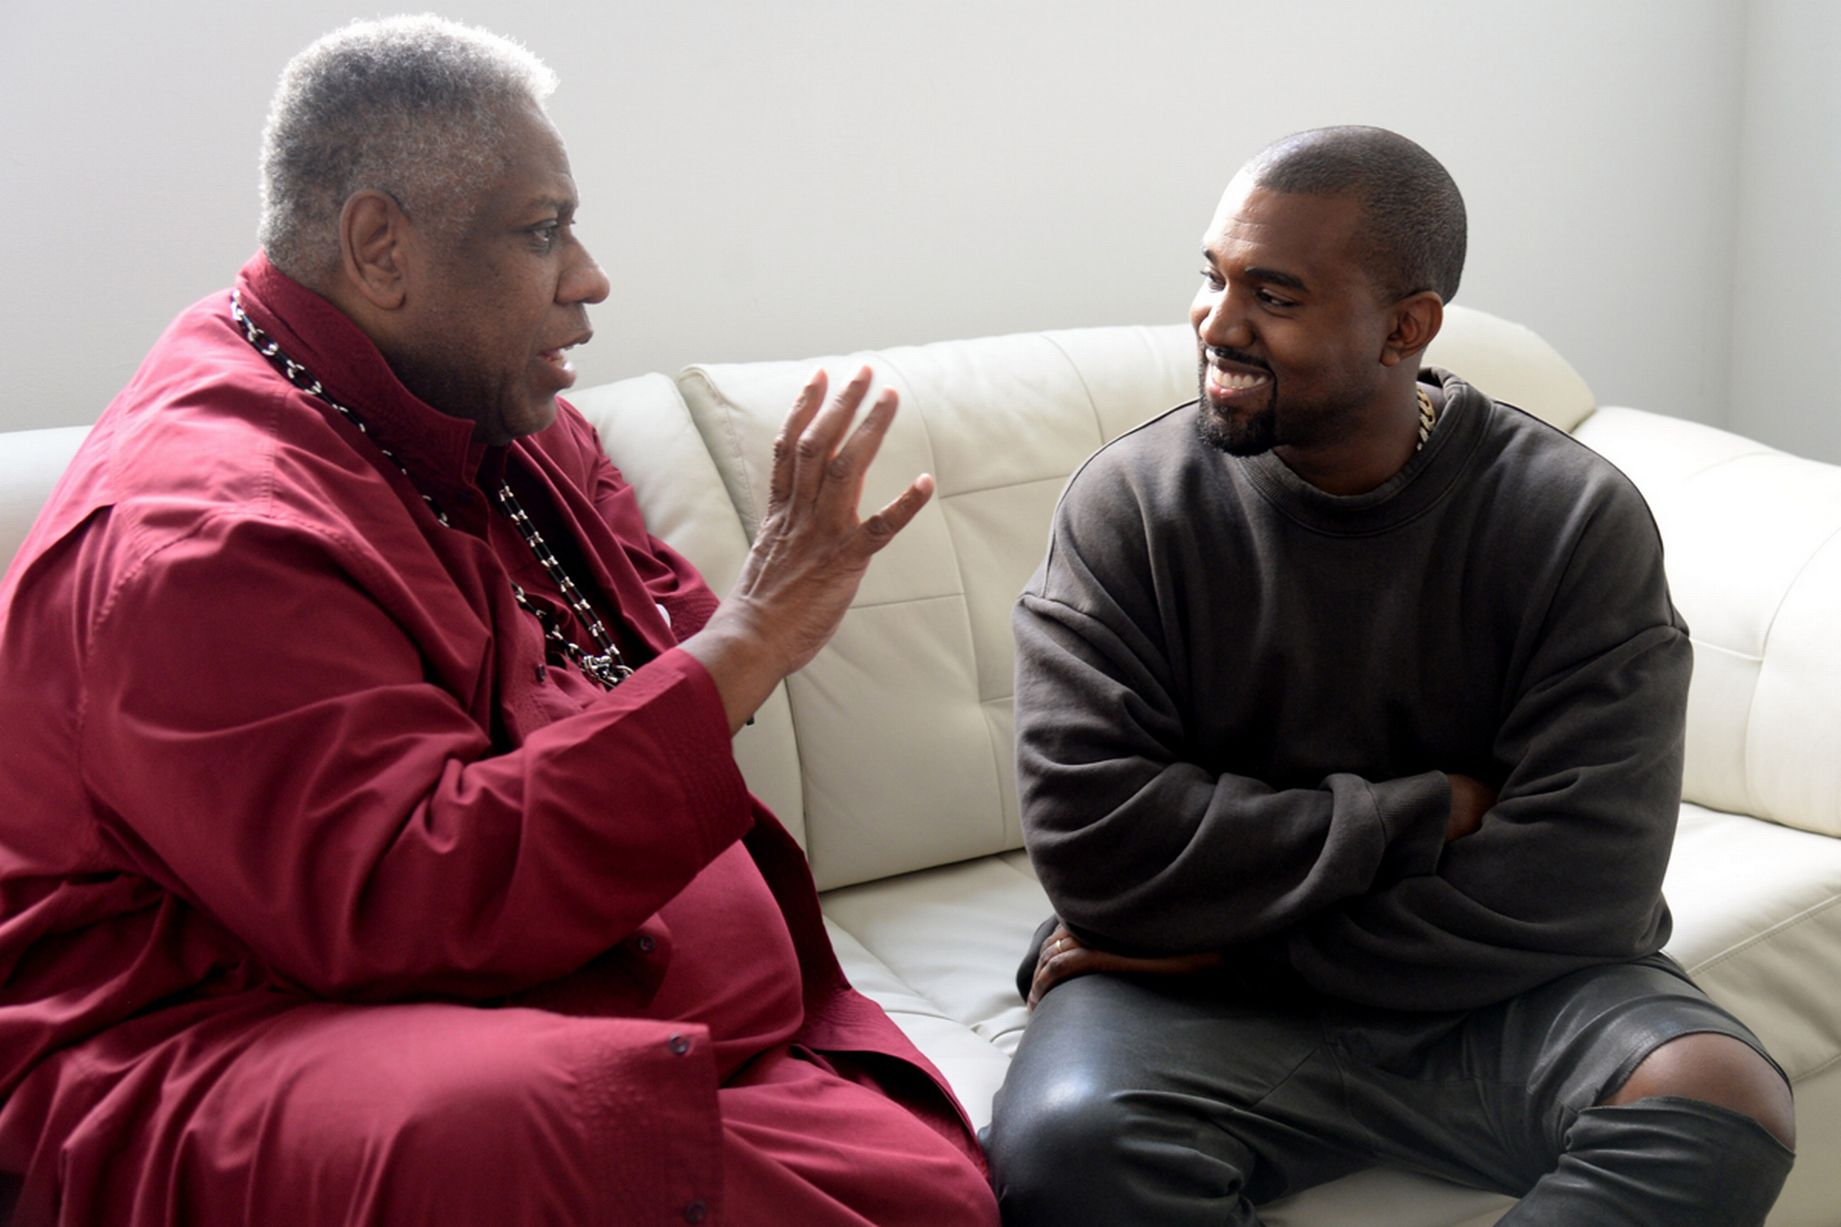 Andre-Leon-Talley-and-Kanye-West.jpg